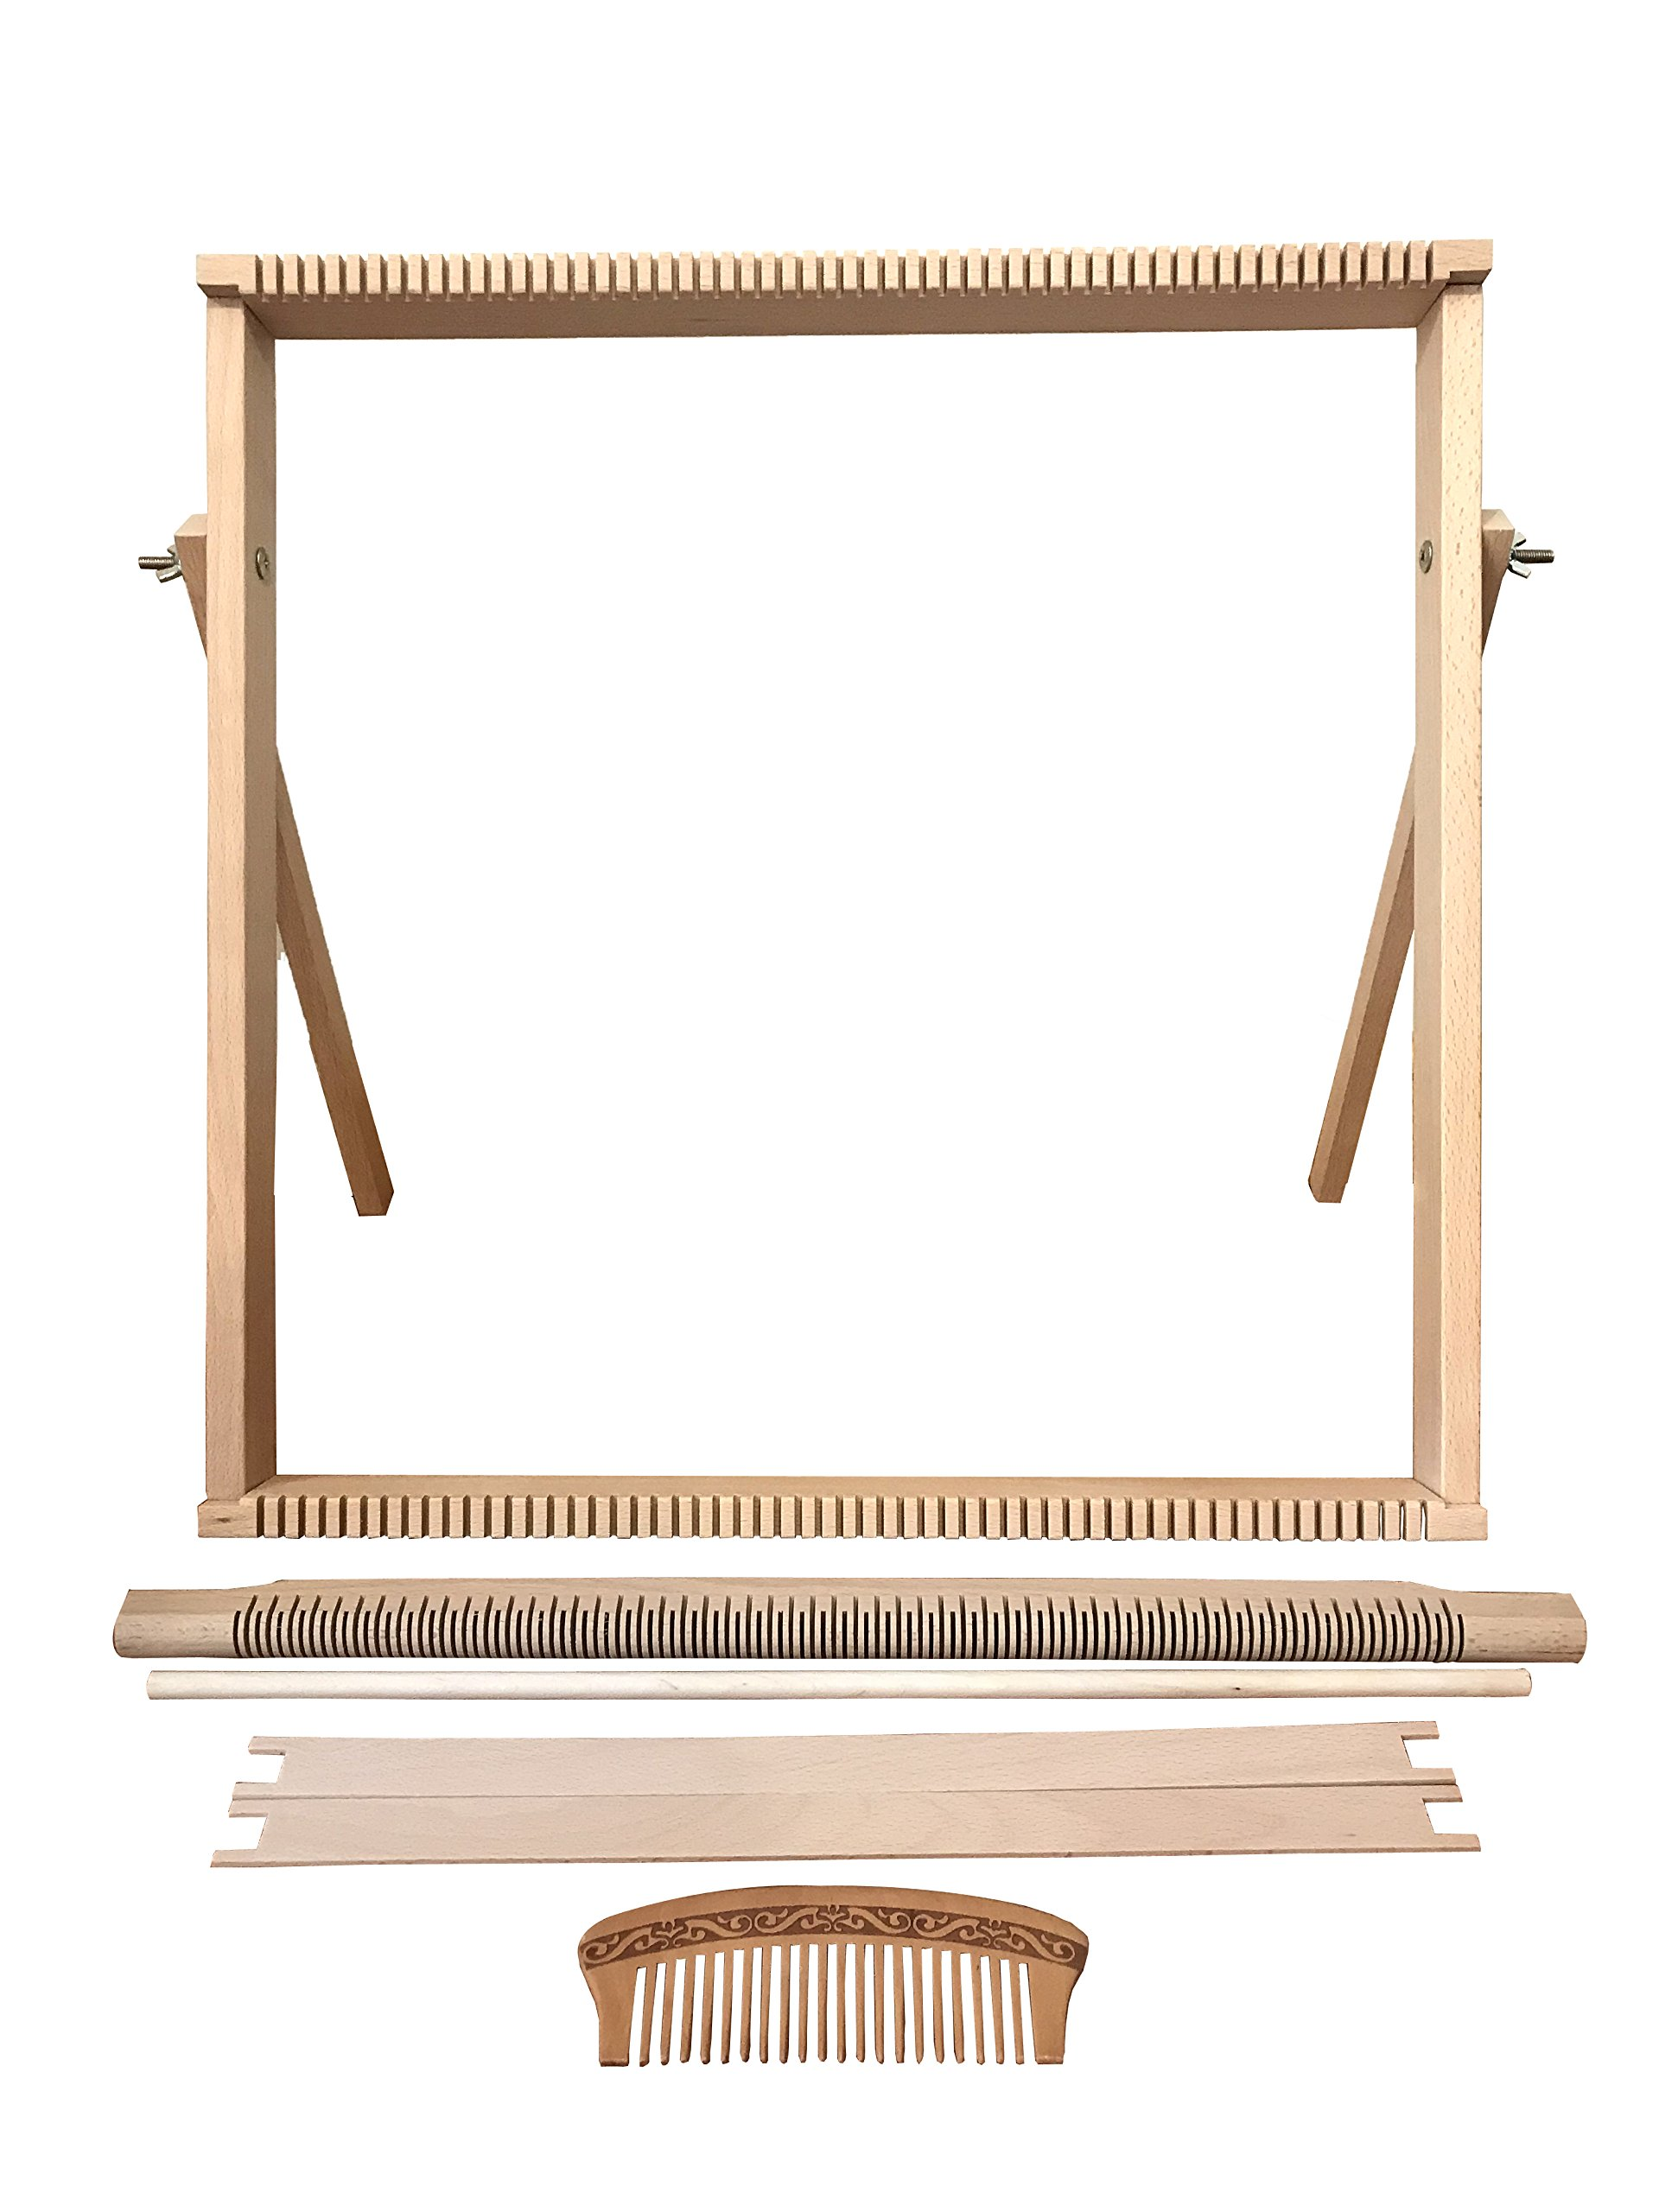 Weaving Loom Kit Large (50 cm x 50 cm) with Stand, Wooden Looming Set, Frame Loom with Heddle Bar | Beech Wood Tapestry Loom by Craft Boutique